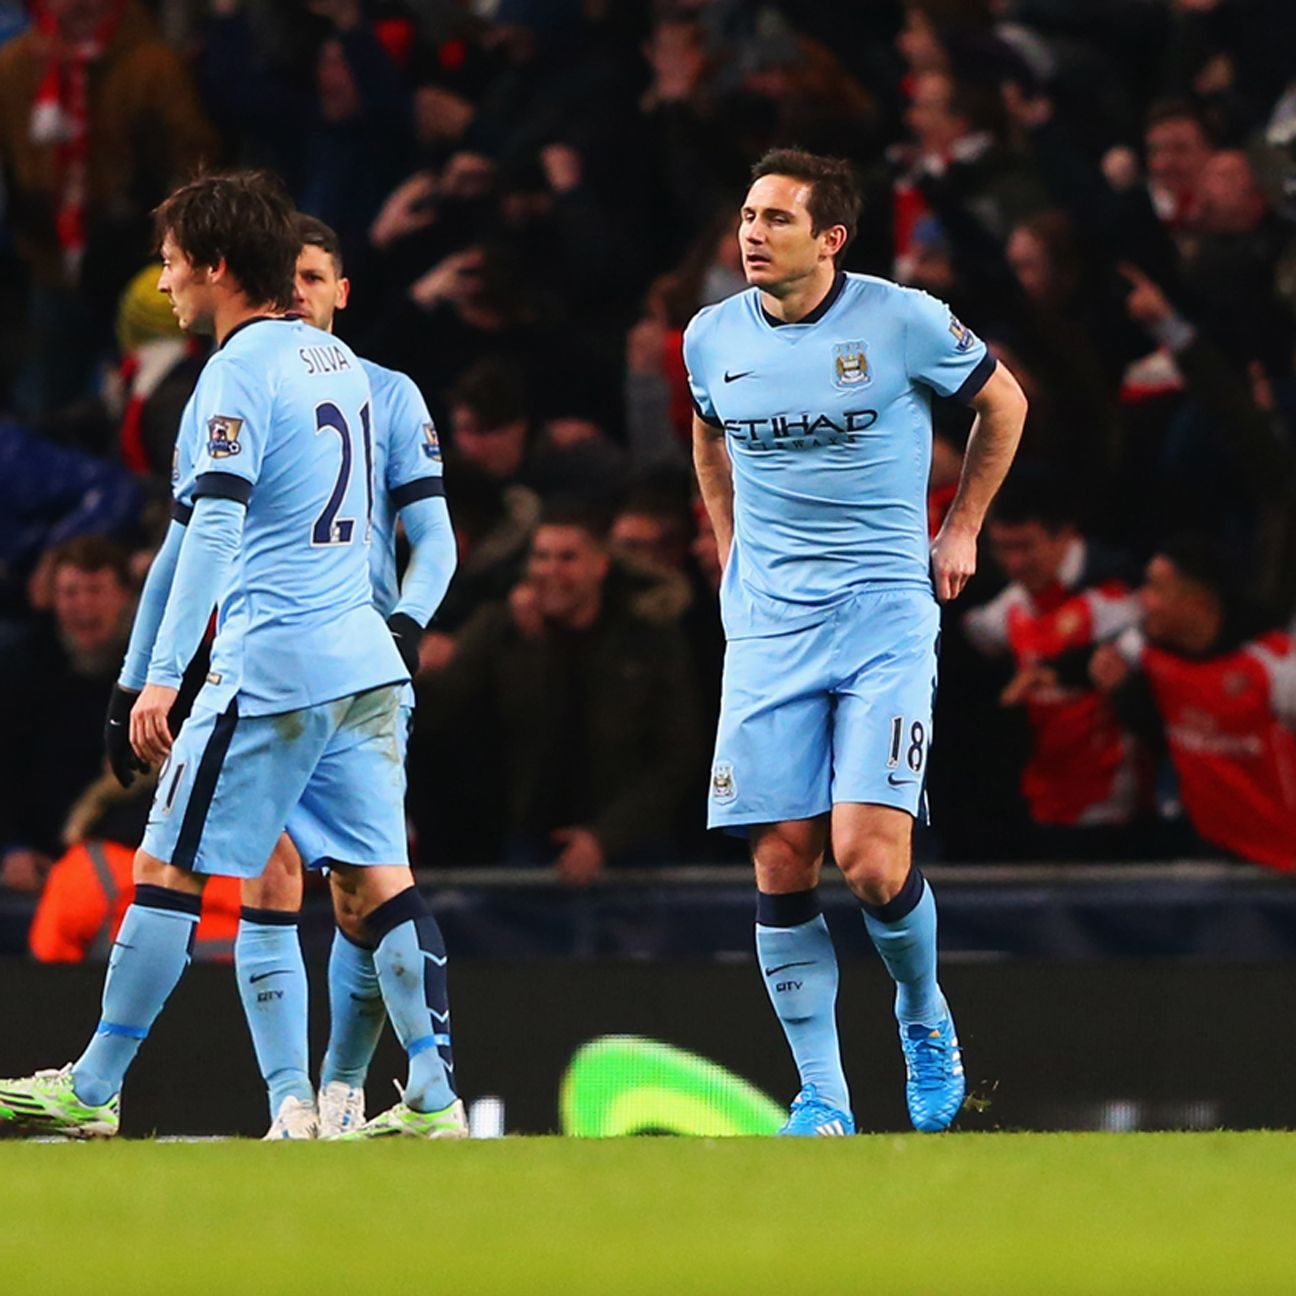 Can Manchester City get back on track this weekend versus West Brom?